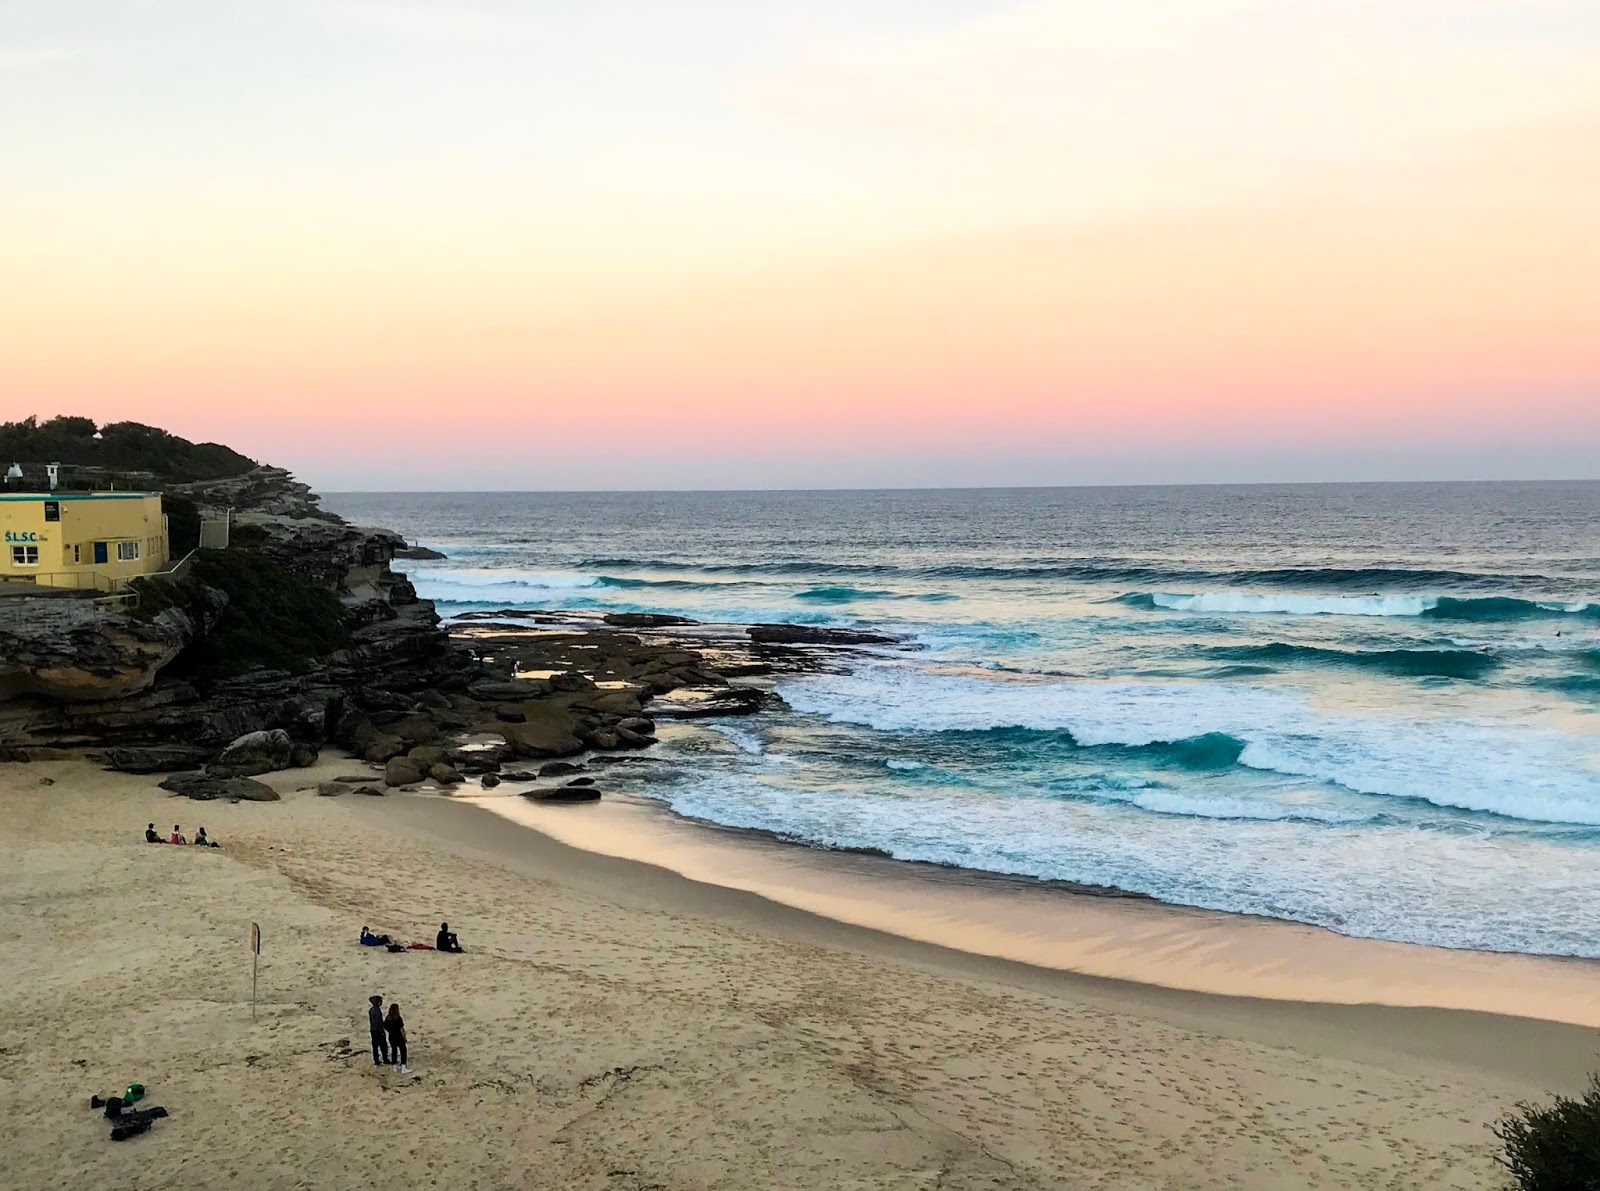 Sunset over the beach in Sydney